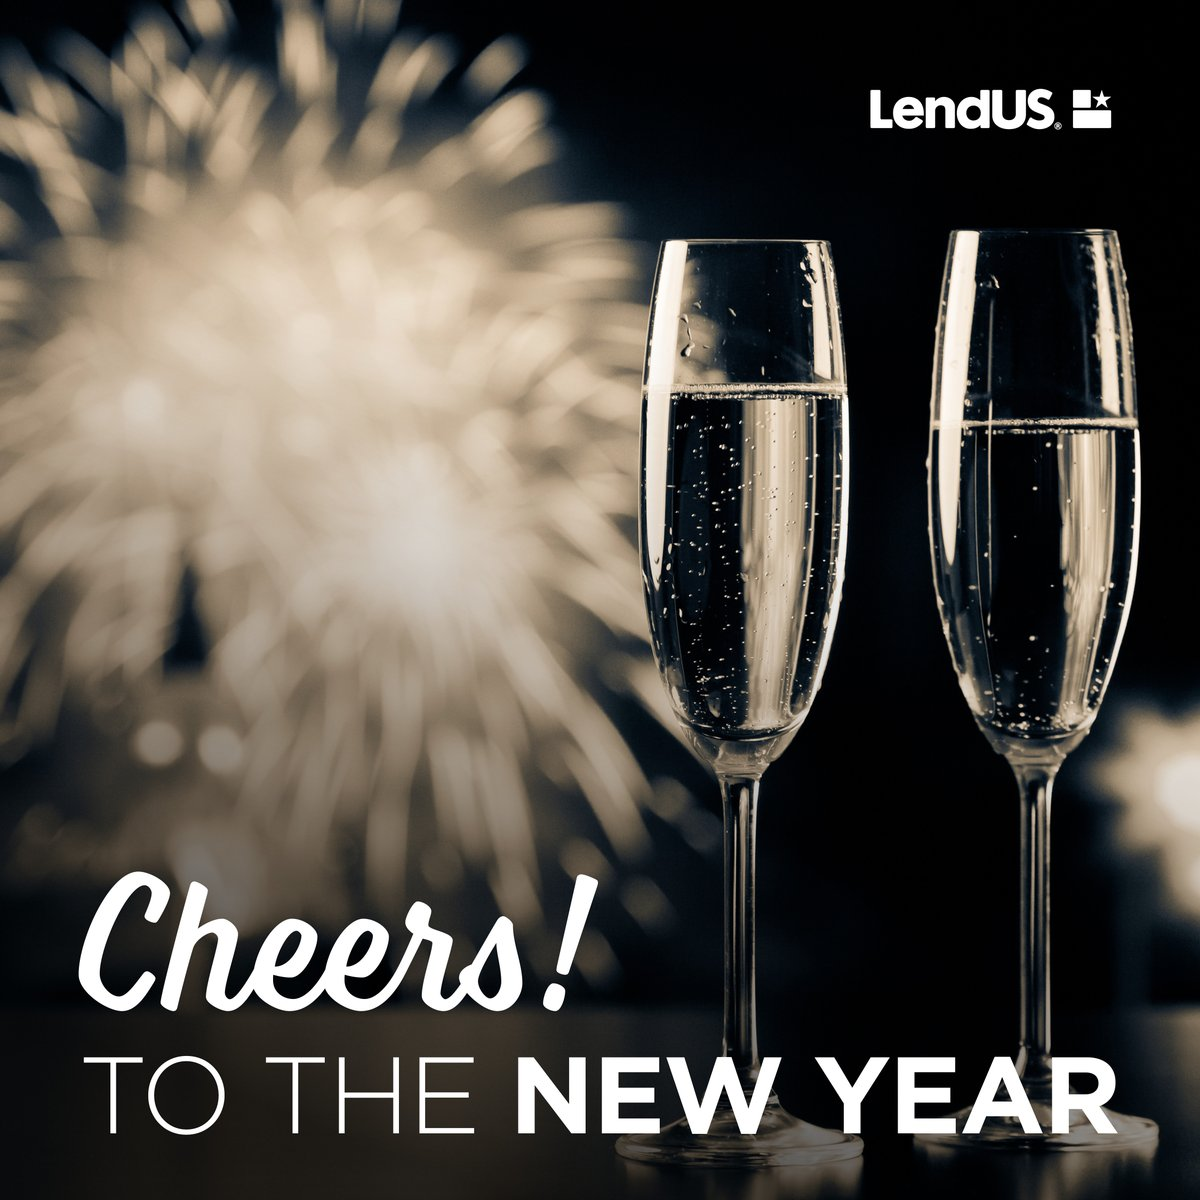 Bid adieu to the old and embrace the new with hope and ambition! Wishing you a New Year full of opportunities! 🥂Cheers to 2021  #lendusfamily #NewYearsEve https://t.co/XLlaeCLECS